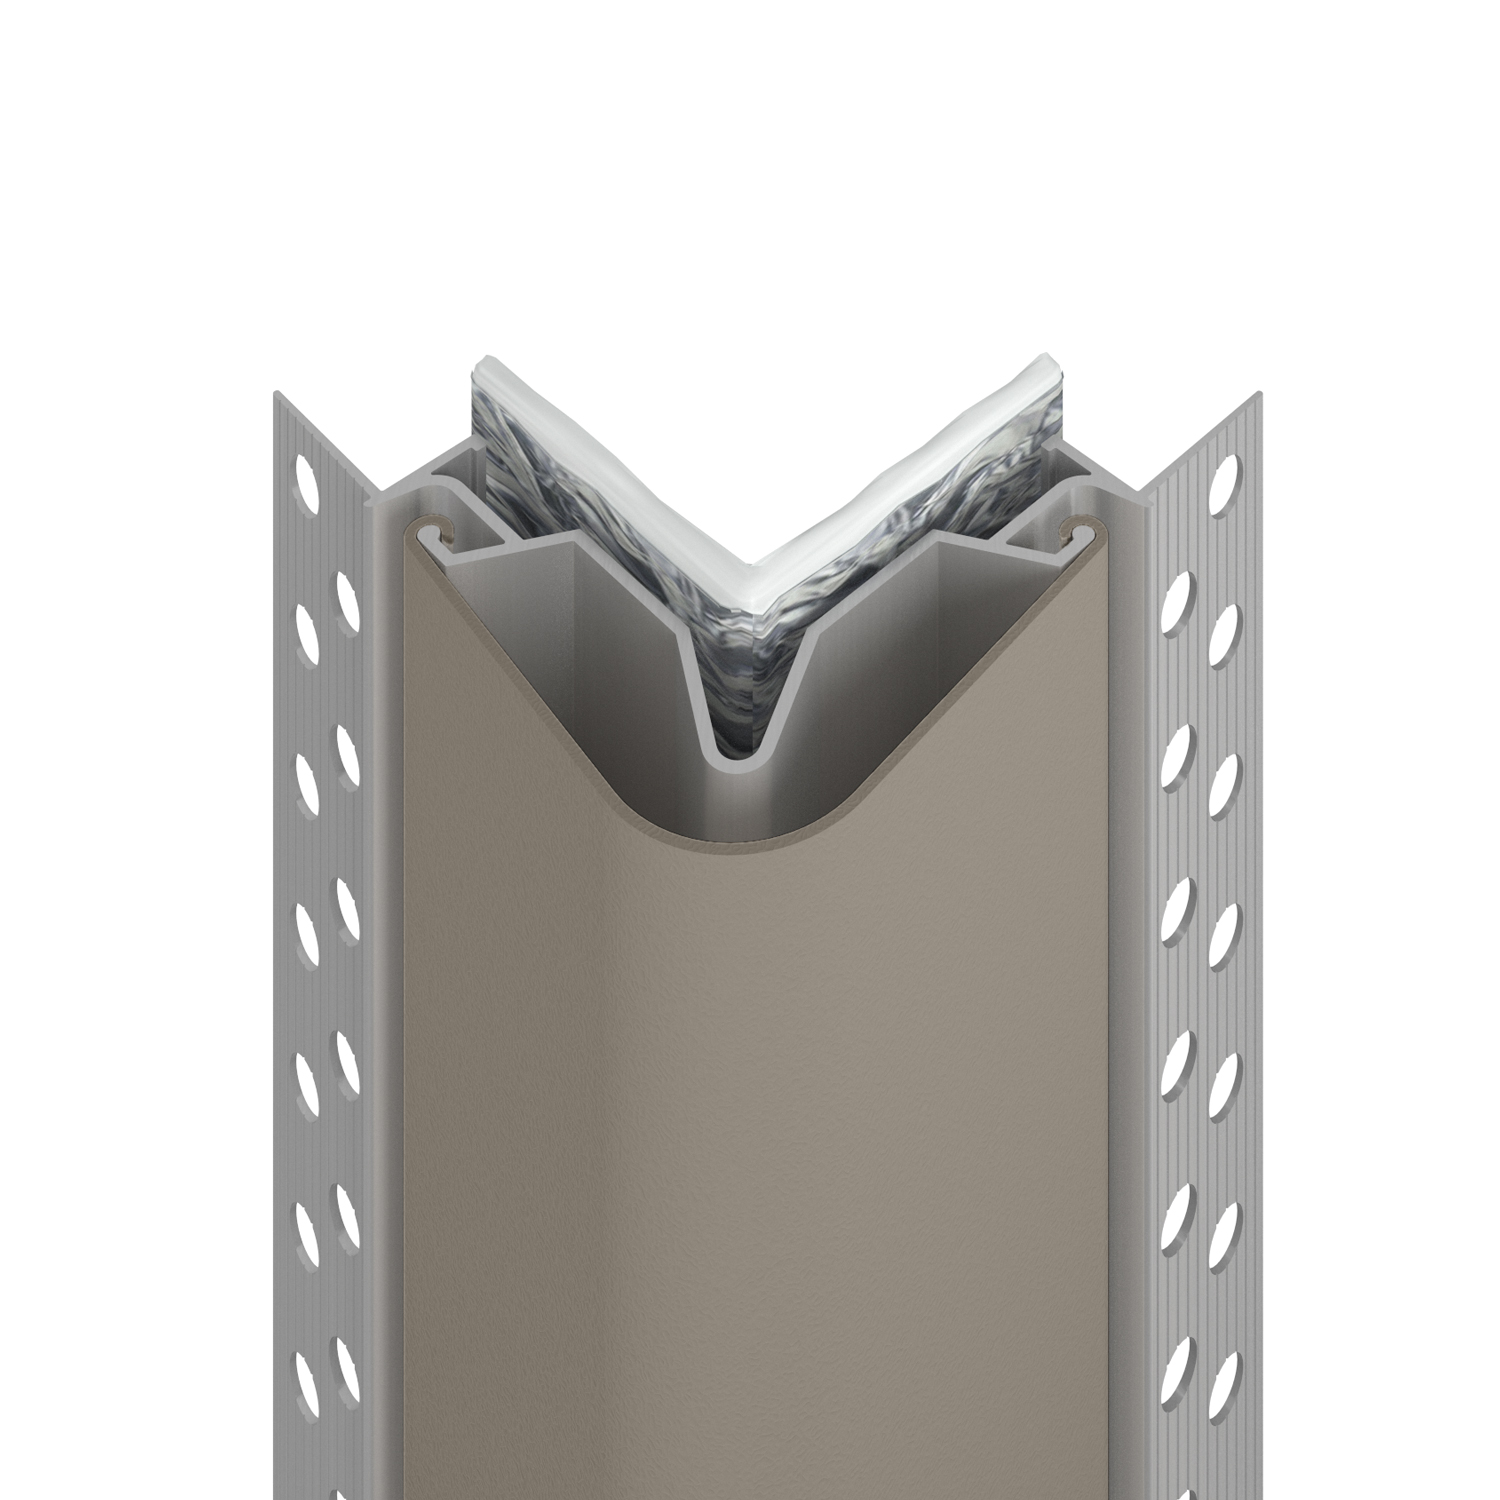 170FR fire rated corner guard in shiprock gray